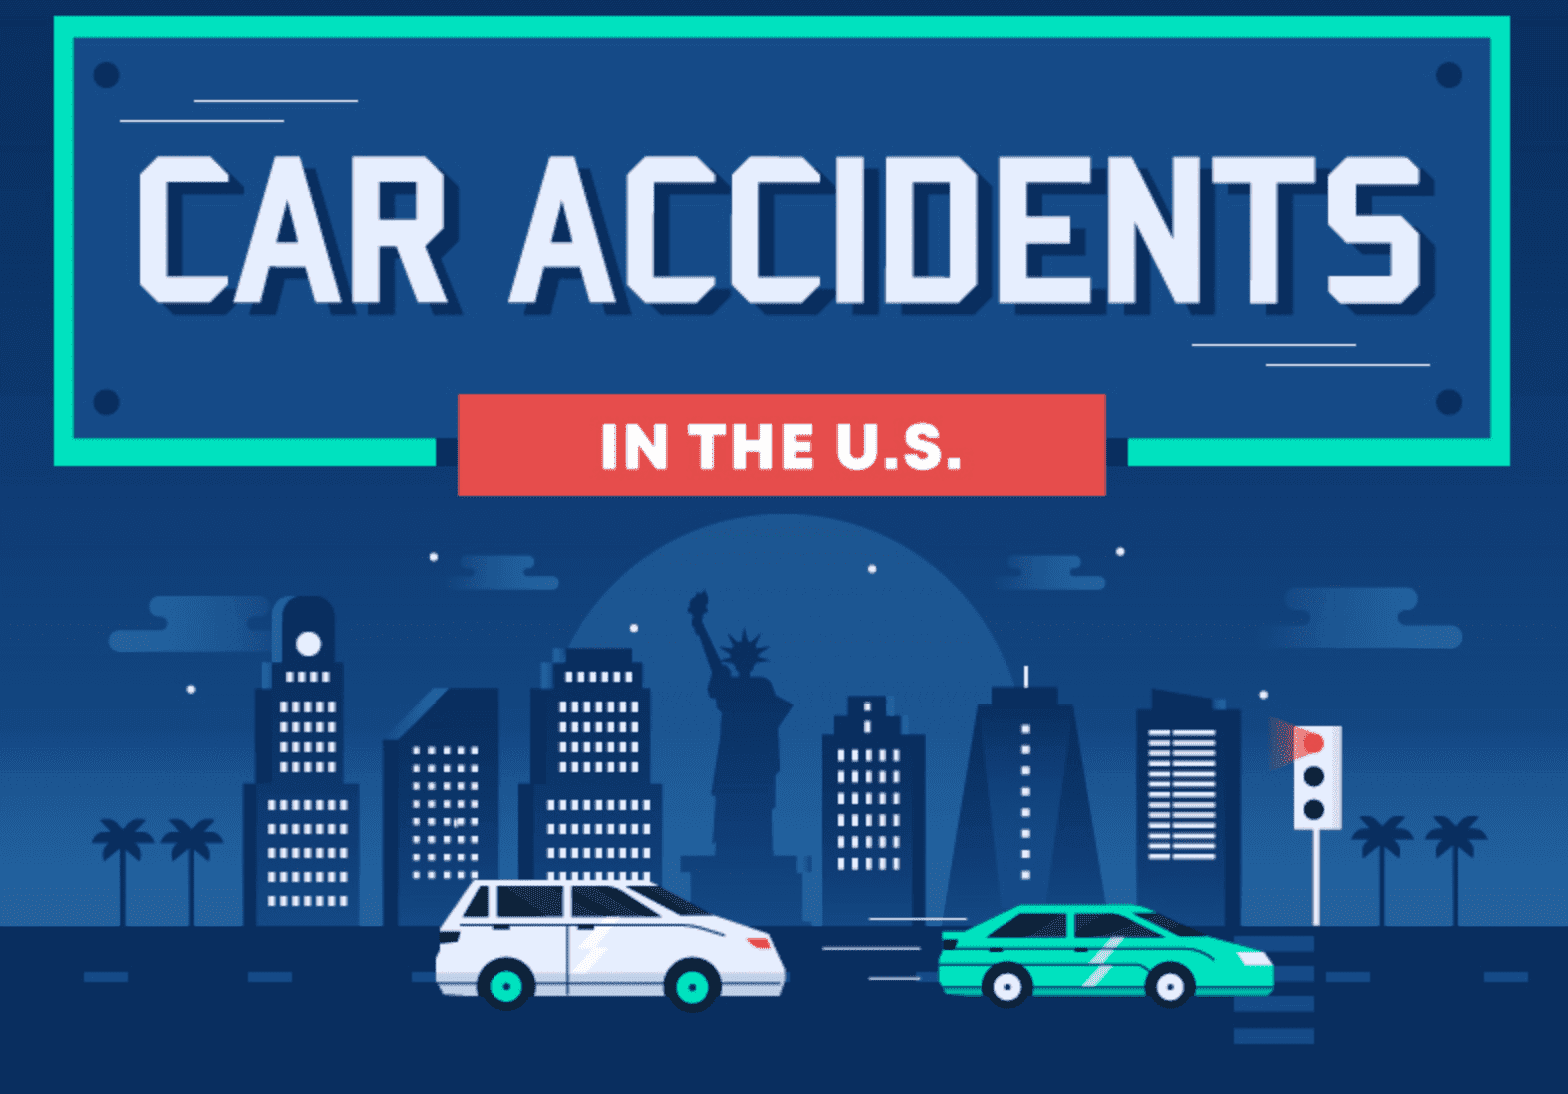 Car accidents in the U.S.; graphic courtesy of the author.